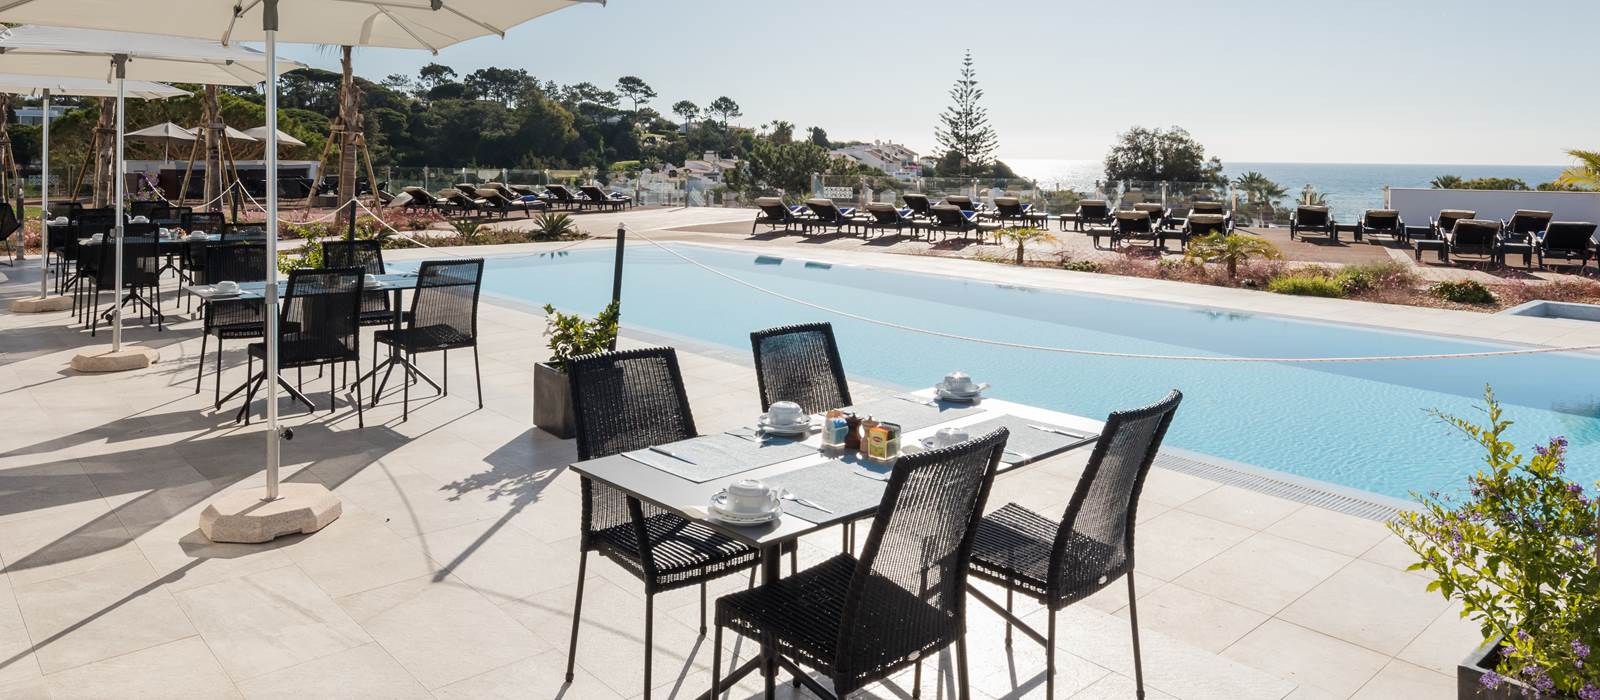 Poolside at Dona Filipa Hotel, Algarve